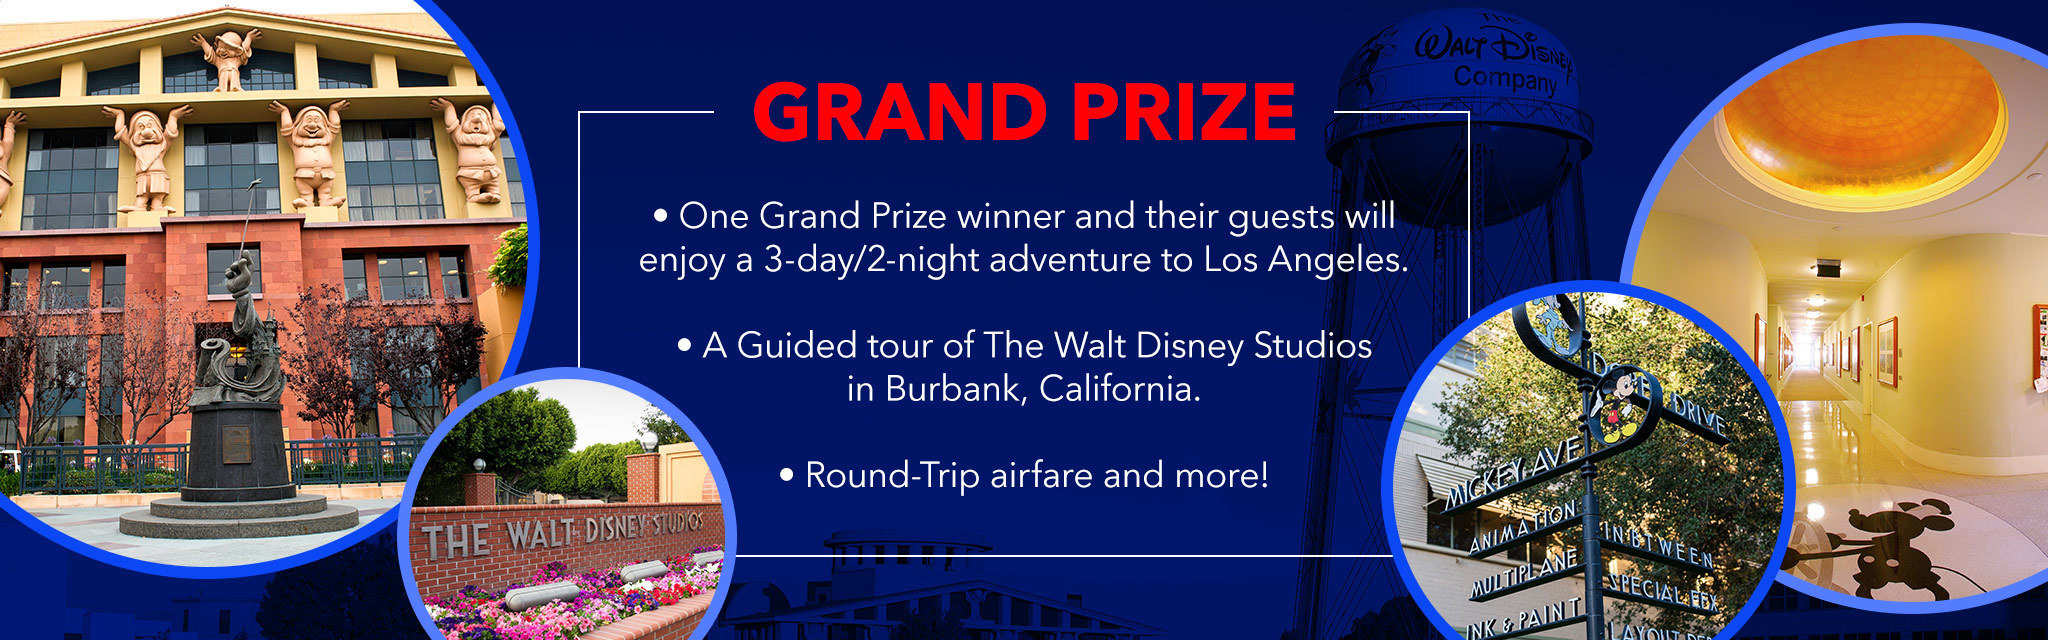 Grand Prize. One grand prize winner and their guests will enjoy a 3 day, 2 night adventure to Los Angeles. A Guided tour of the Walt Disney Studios in Burbank, California. Round Trip airfare and more.